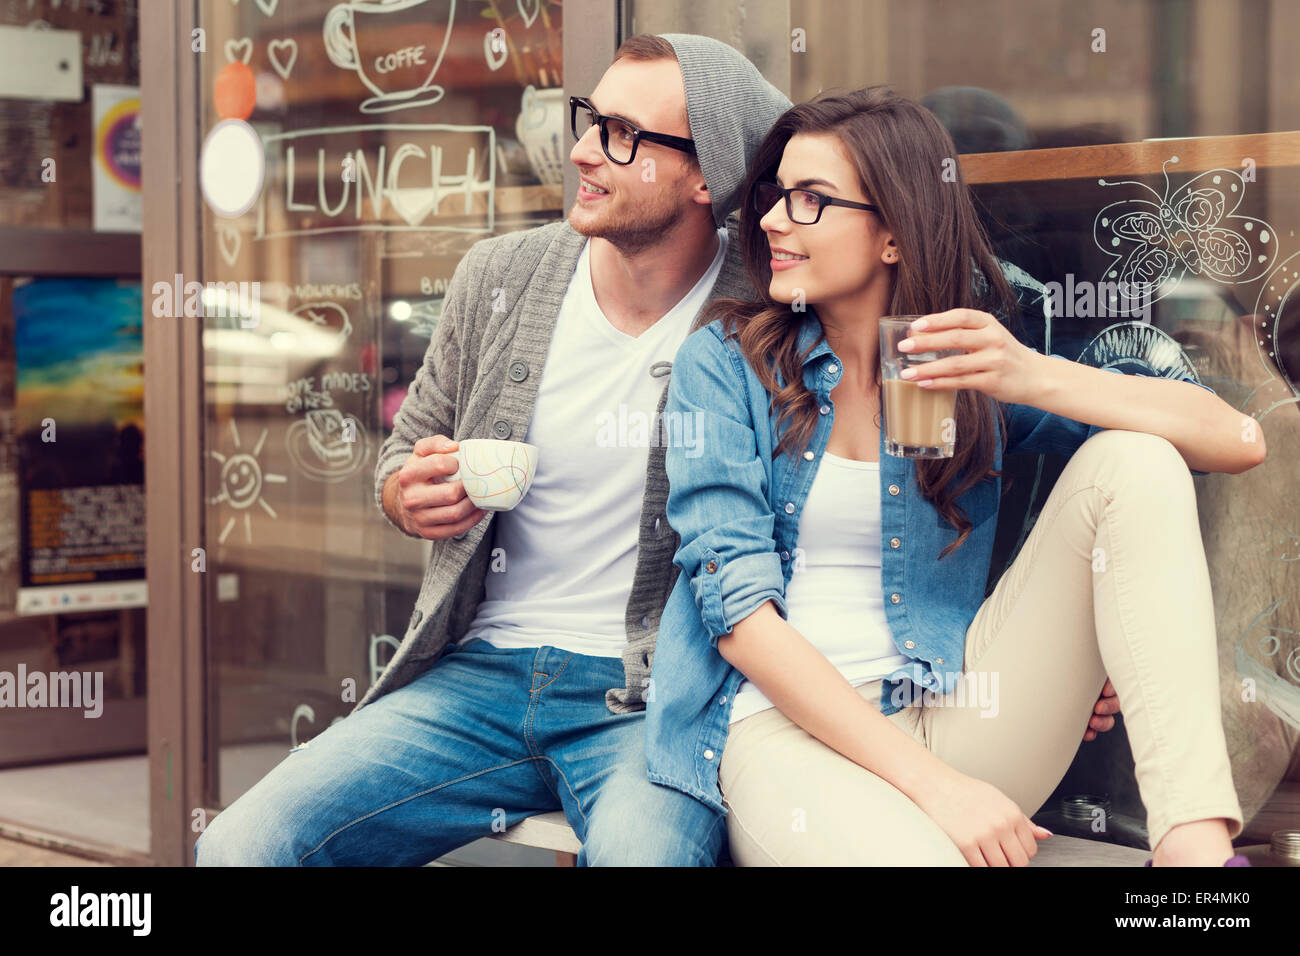 Portrait of stylish couple at outside of cafe. Krakow, Poland - Stock Image